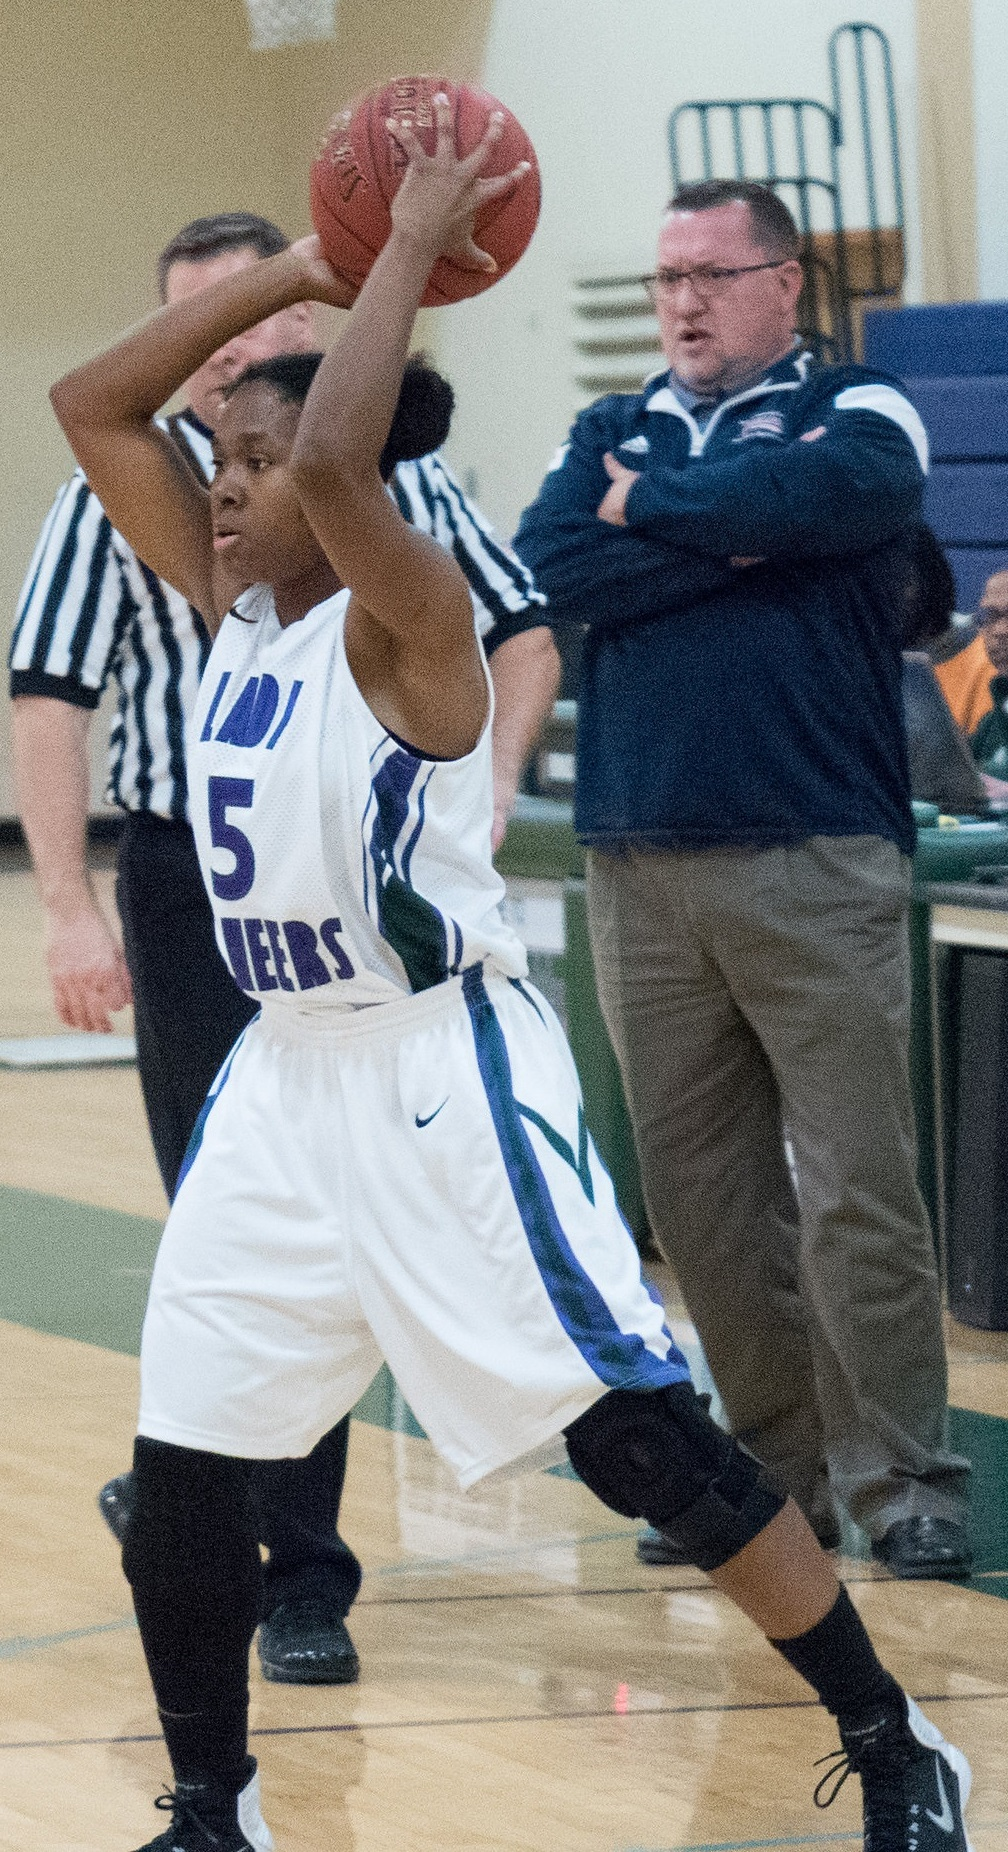 Dasia Byrd with ball